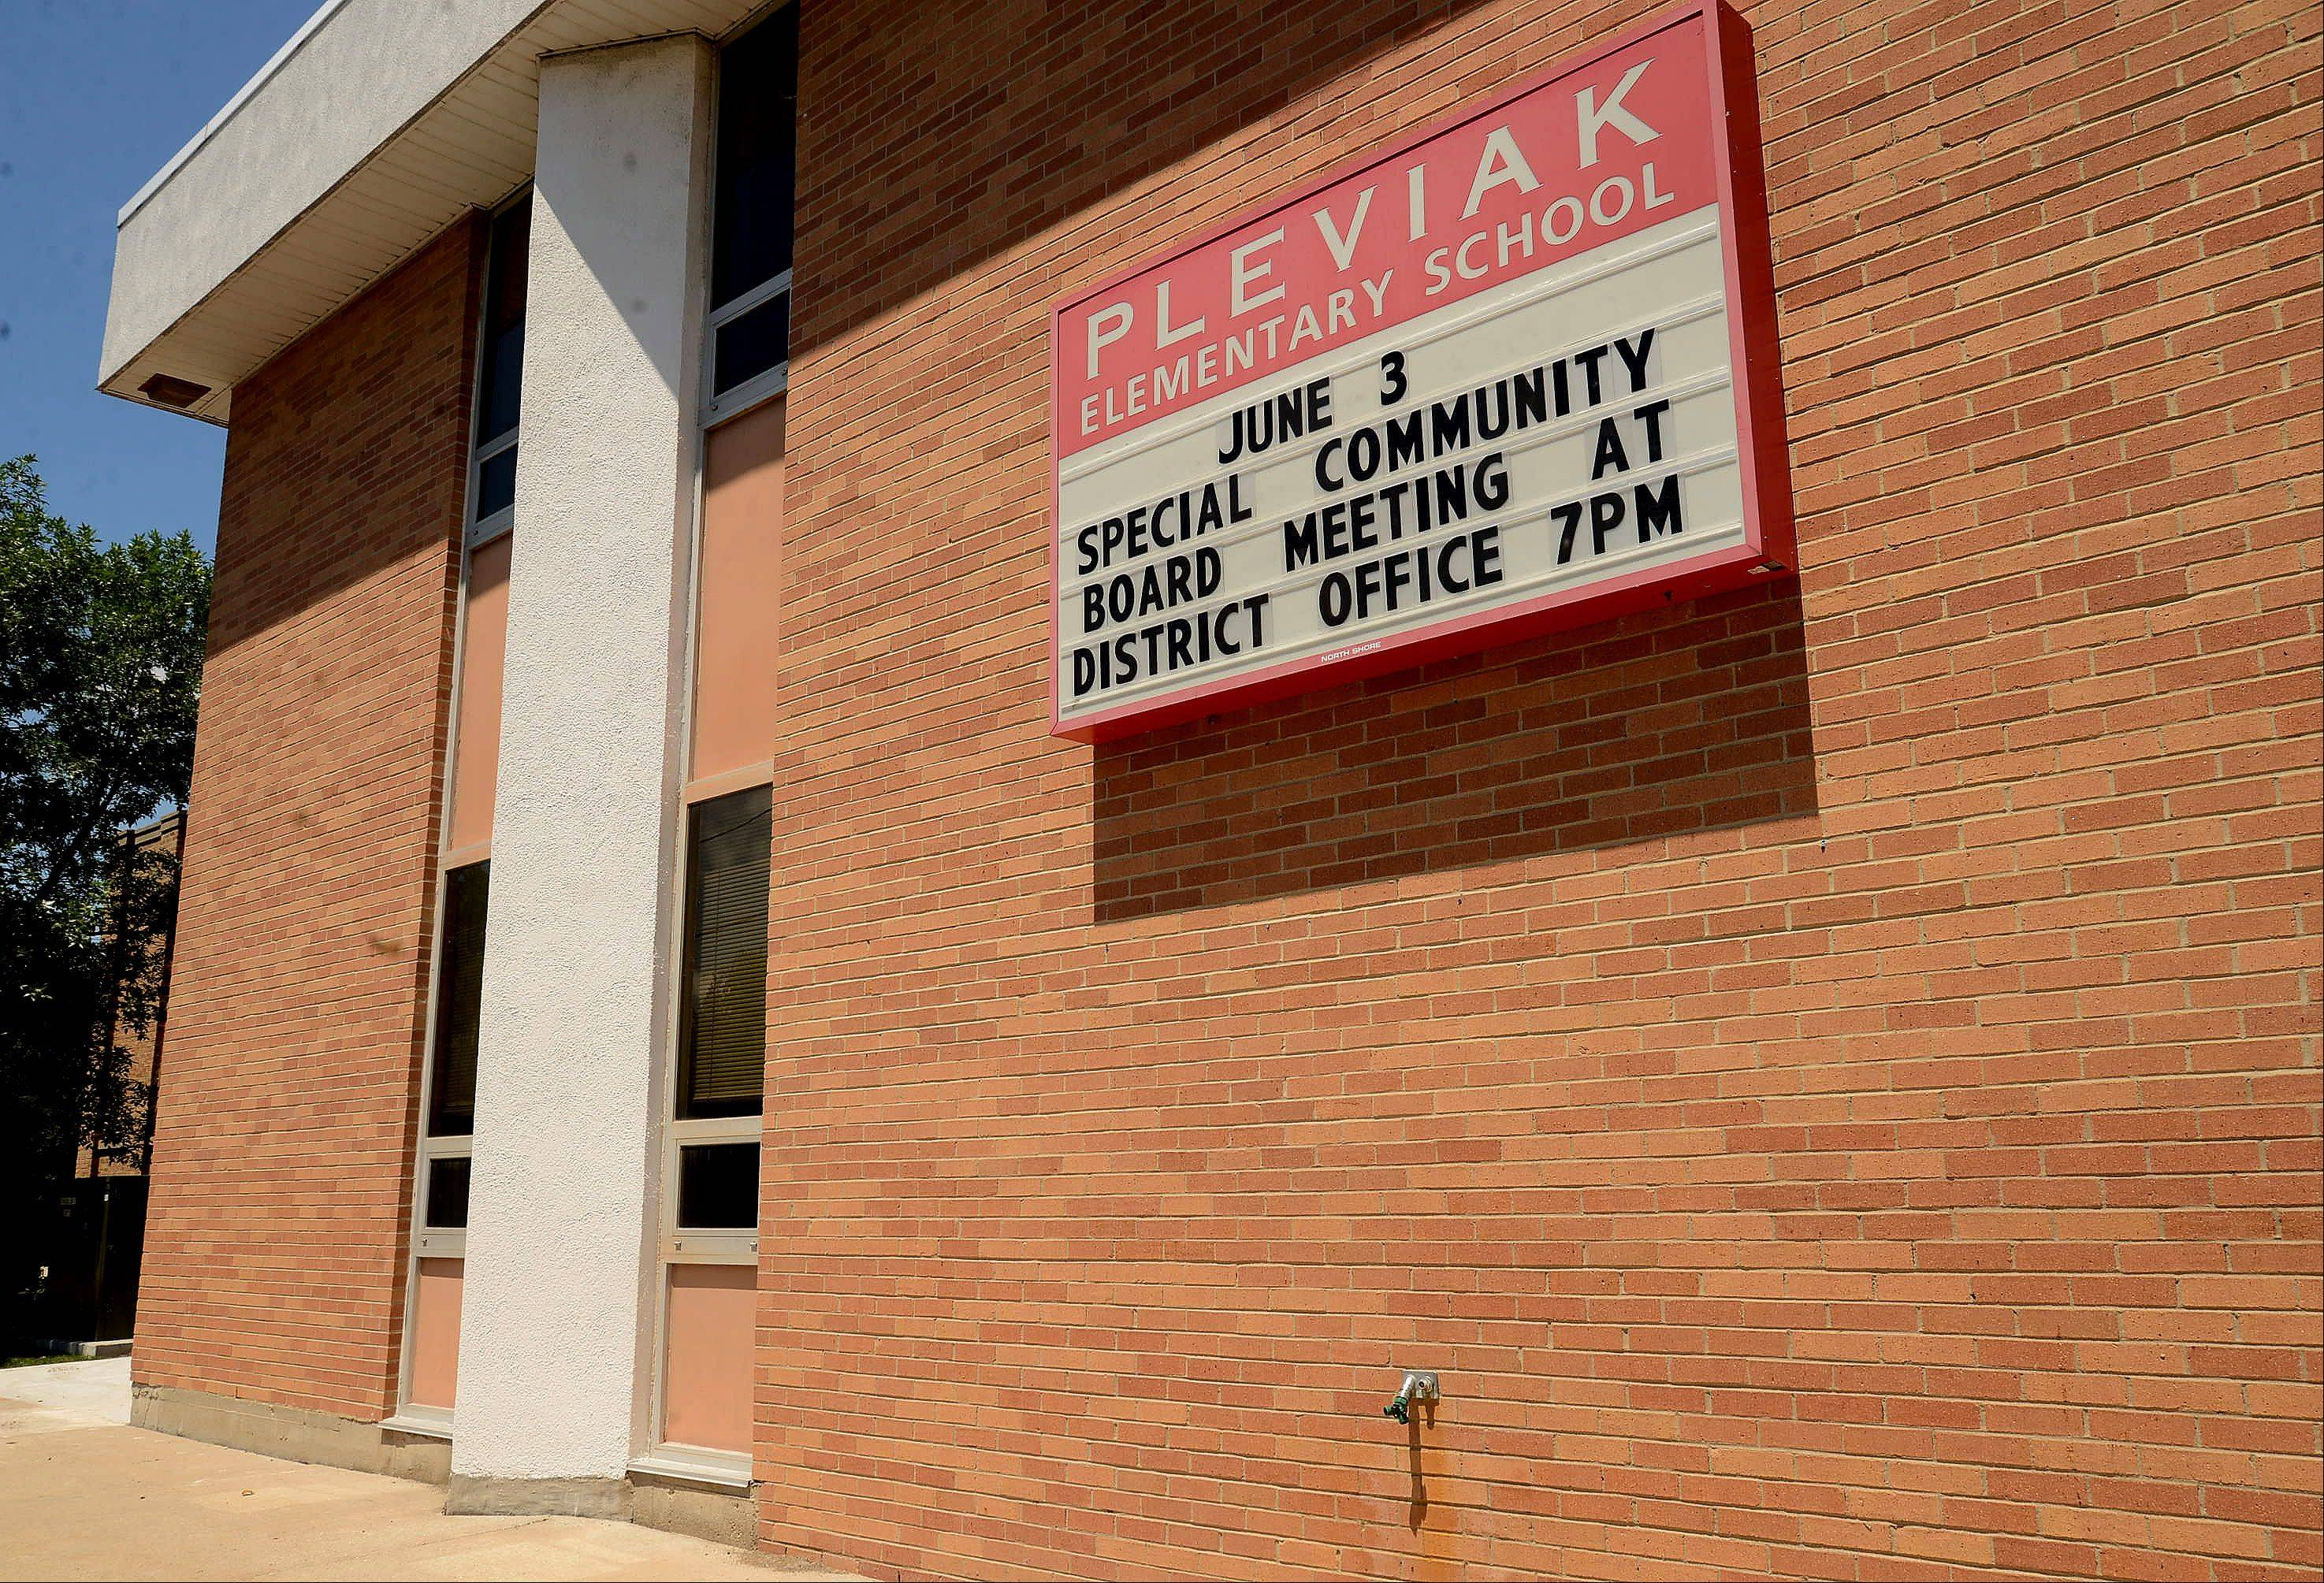 Lake Villa District 41 officials are expected to vote tonight in favor of closing J.J. Pleviak Elementary School after the next school year. What's less clear is how school board members will act on a proposal to realign the grade levels taught at the remaining schools.